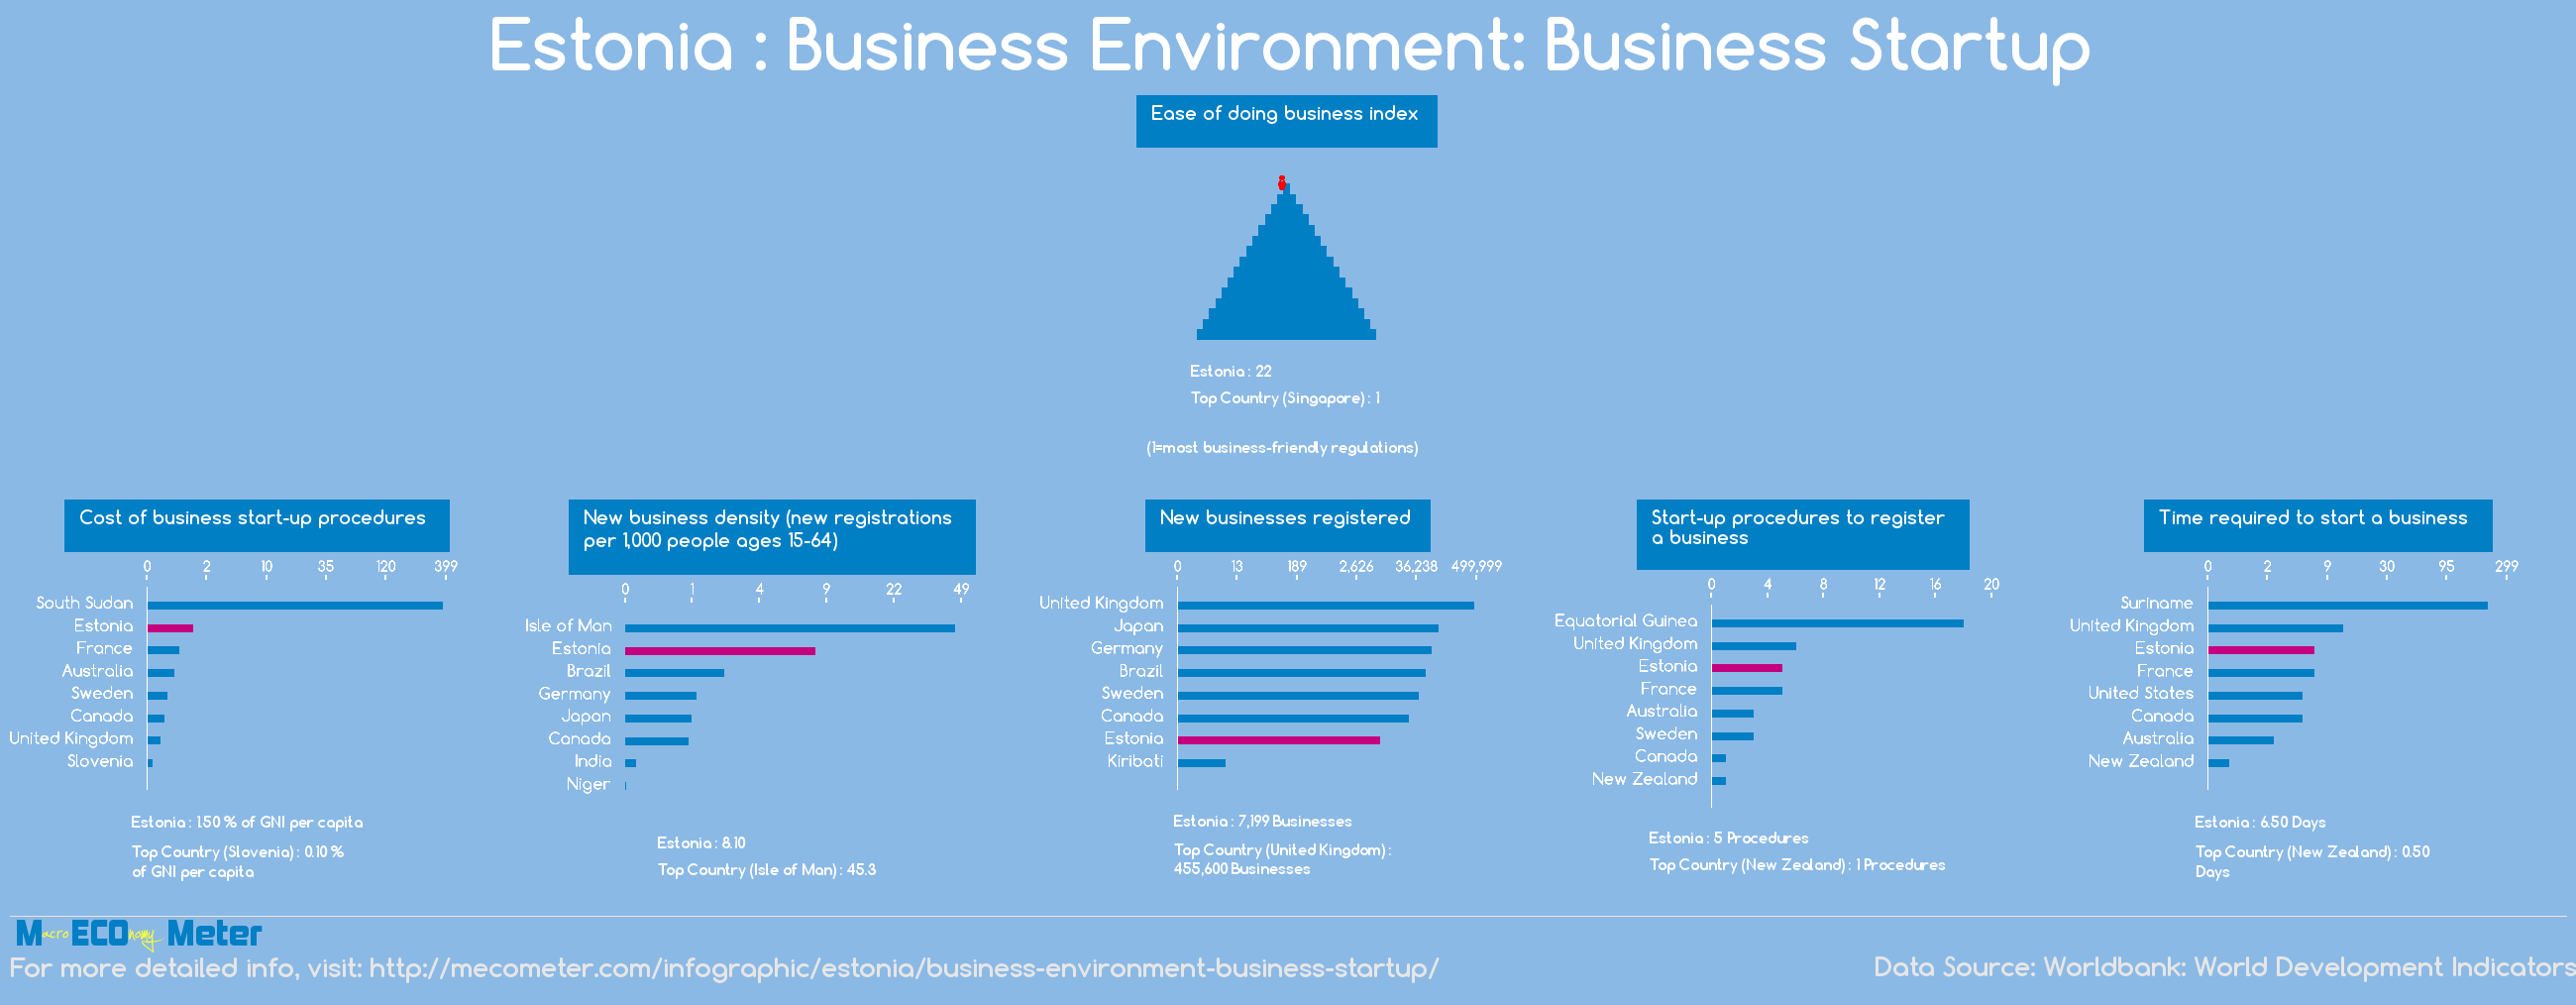 Estonia : Business Environment: Business Startup